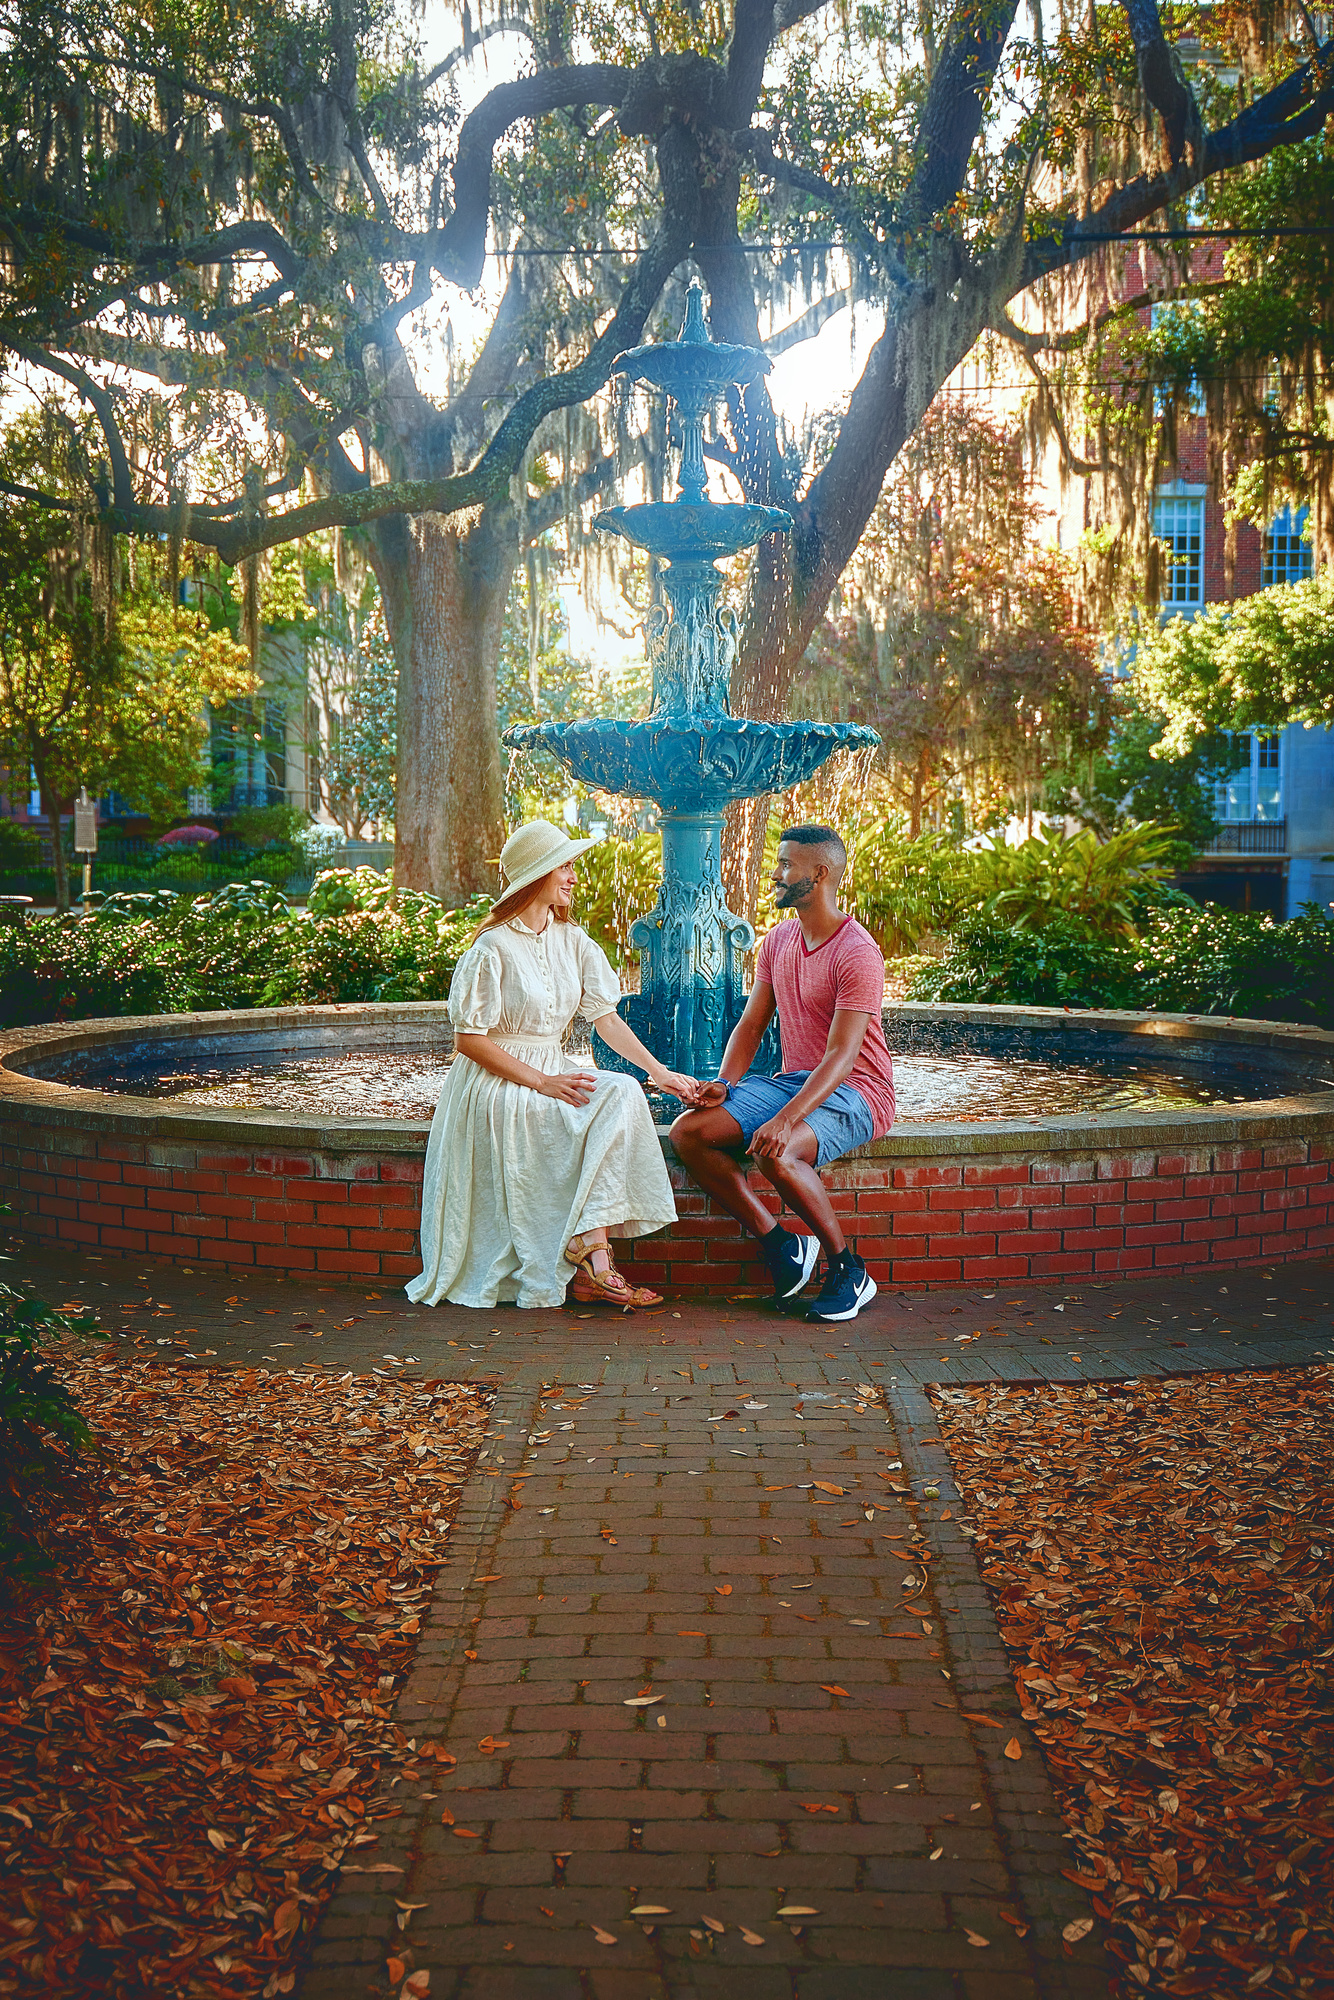 A couple sitting in front of the fountain at Lafayette Square. The Fountain is aged copper, so it is green, and the pool is made of antique brick. Behind the fountain are lots of trees with Spanish moss and shrubs. You can just barely see buildings through the trees. The woman in the couple is wearing a white dress with a white sun hat. The man in the couple is wearing a red heather shirt and denim blue shorts. They are sitting and looking at each other while holding hands.